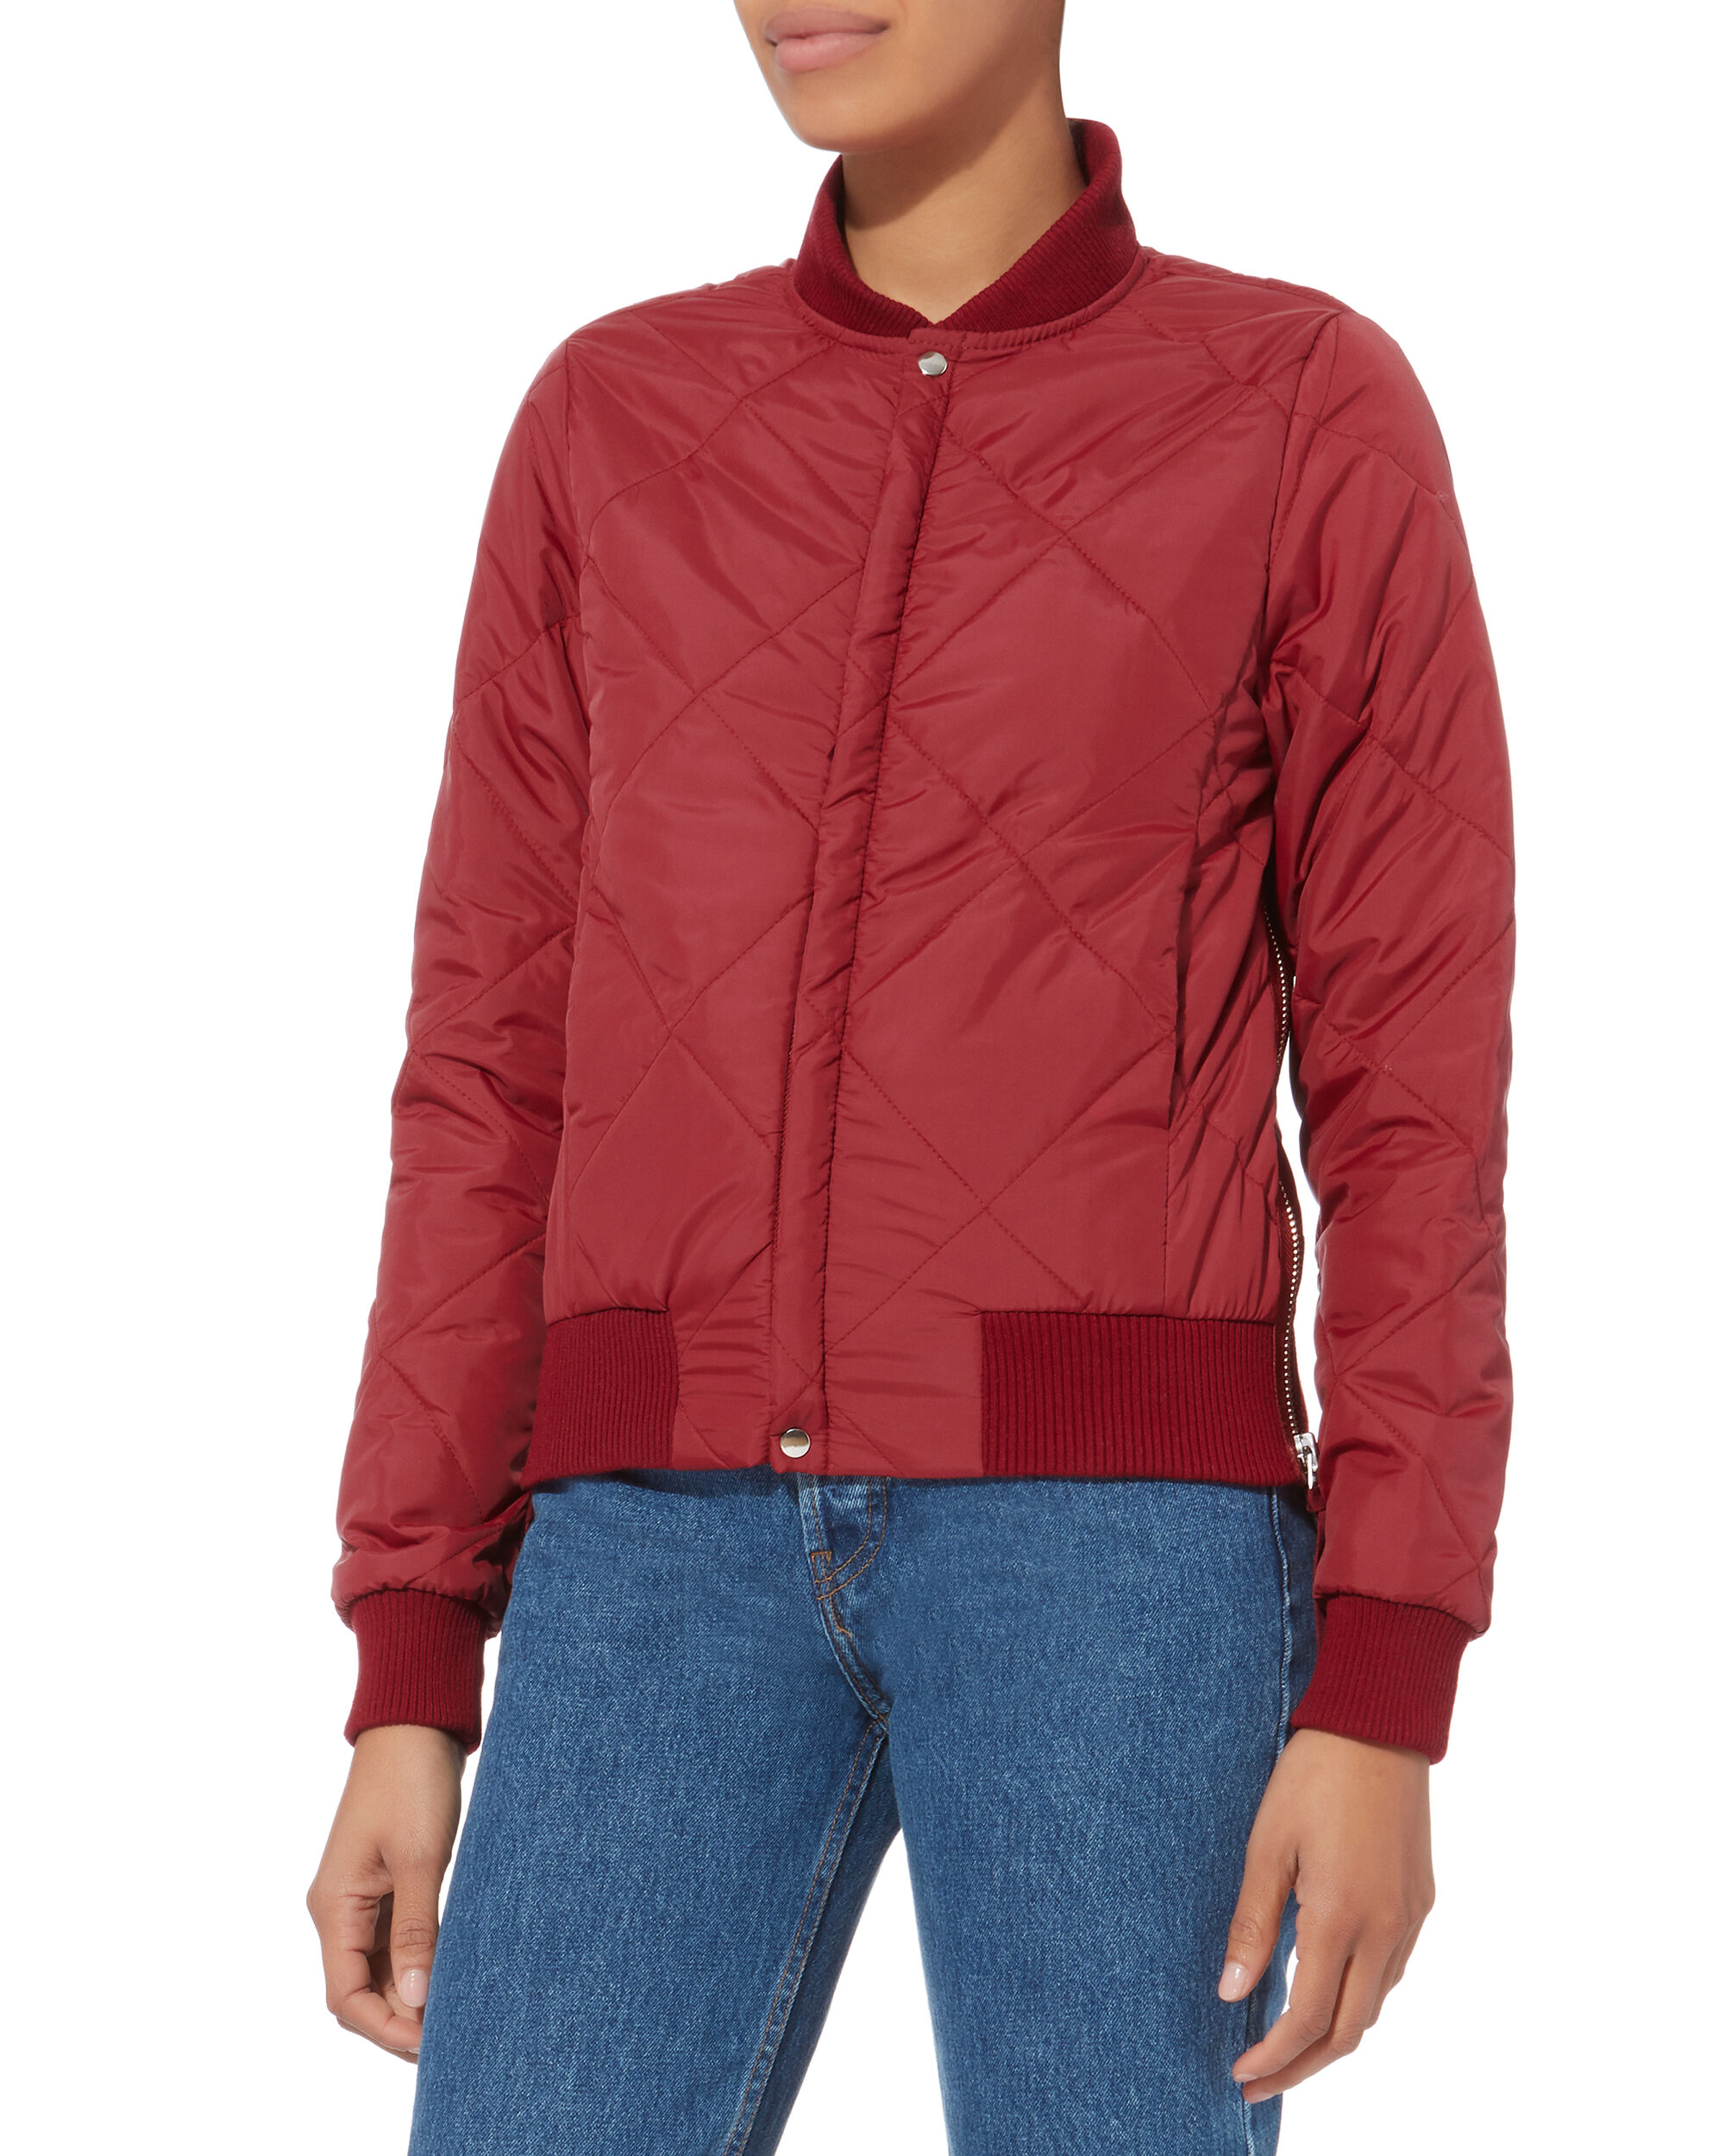 Neil Scarlett Quilted Bomber Jacket, RED, hi-res